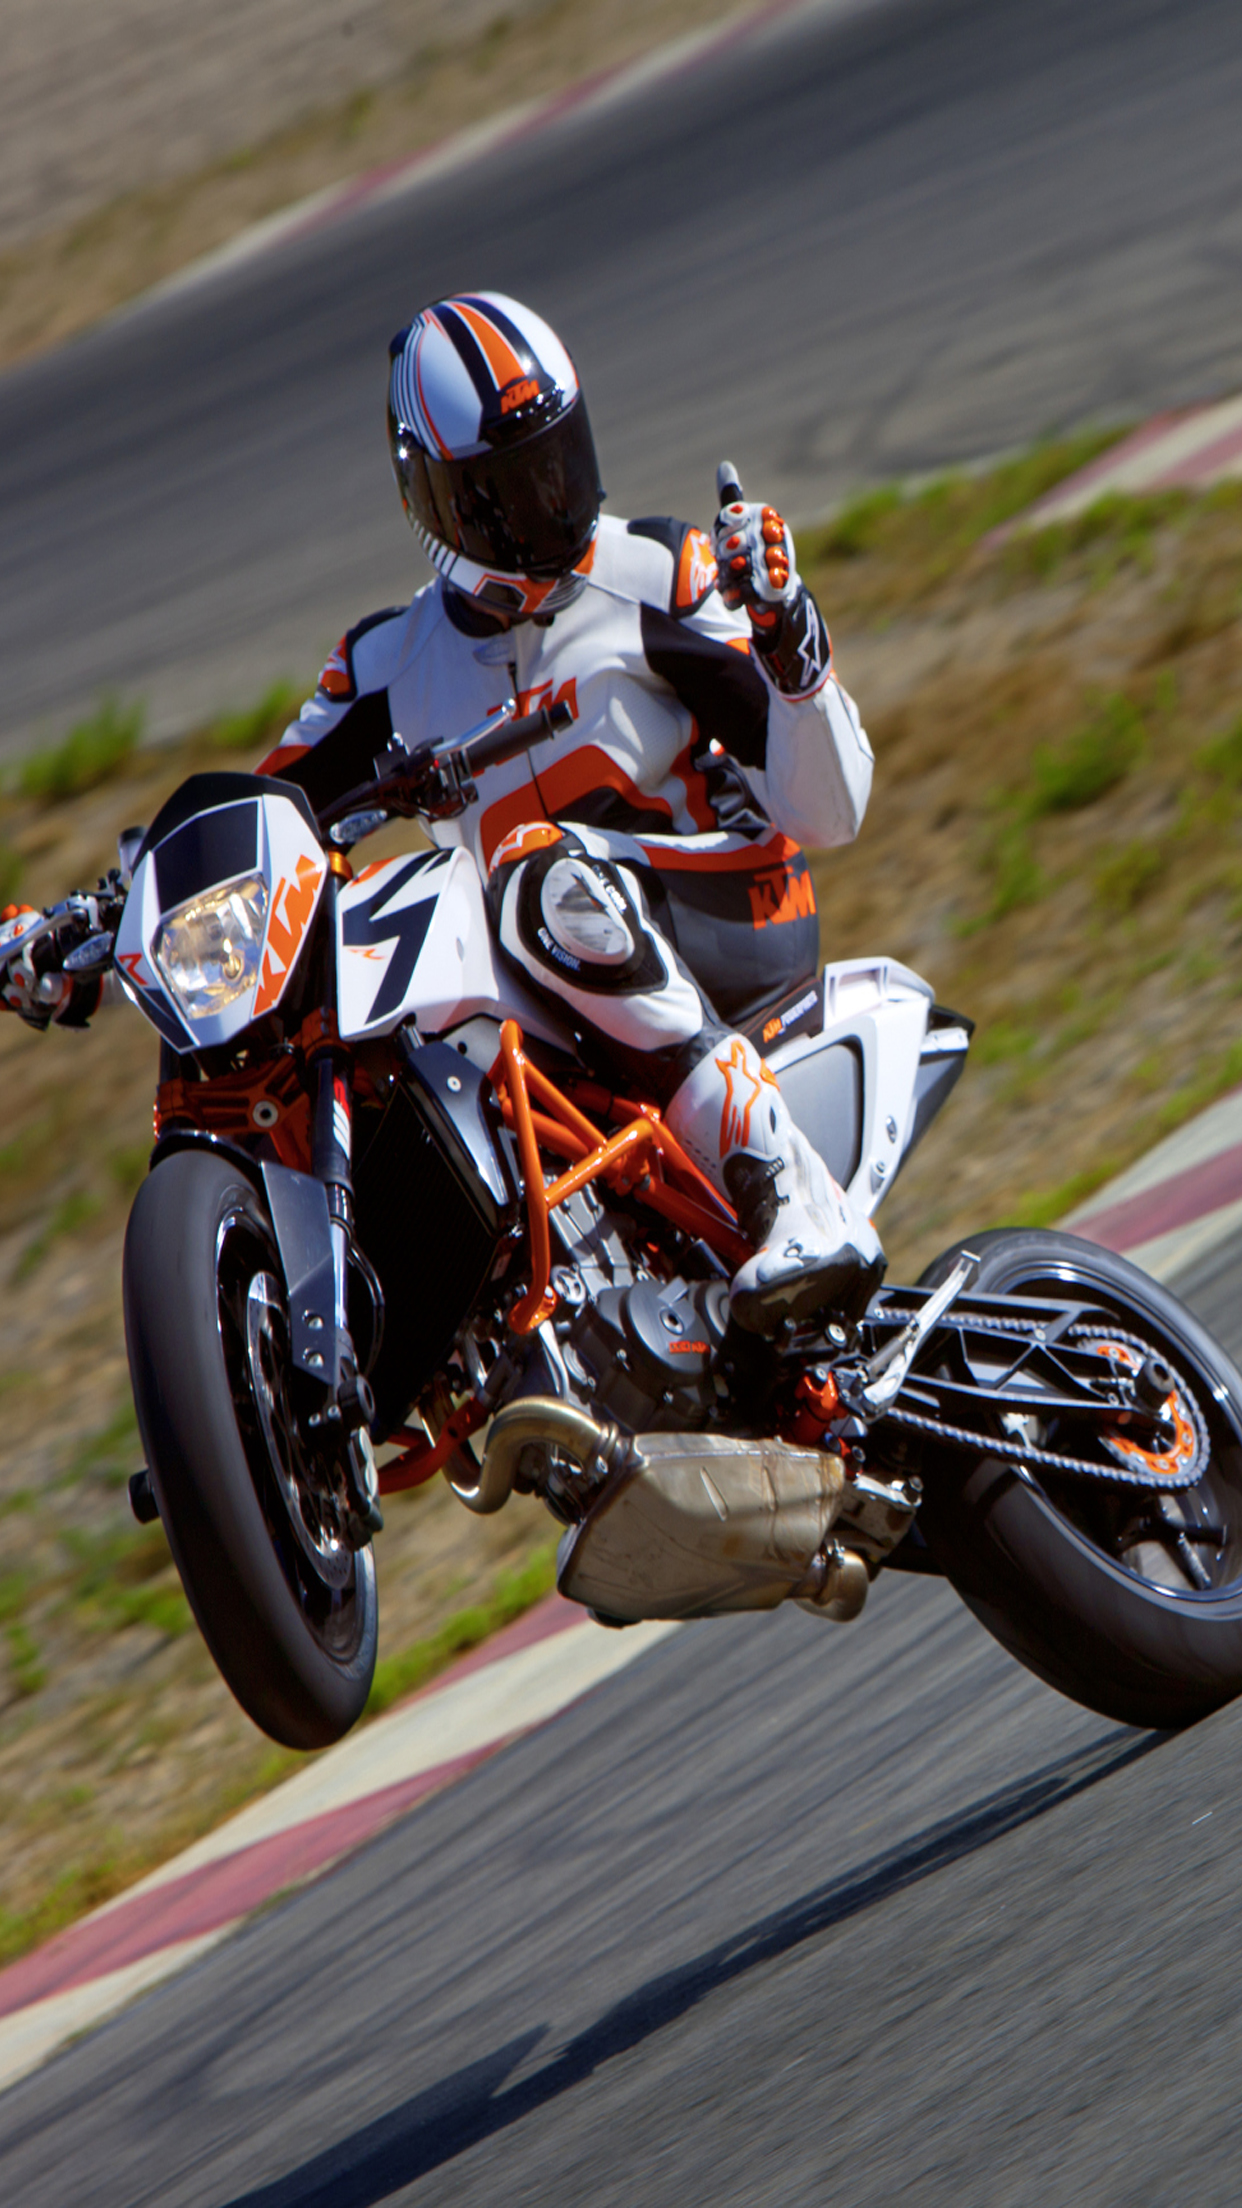 Iphone wallpaper ktm - Wallpaper Hd Iphone Ktm 690 Smc R 1 Free Download